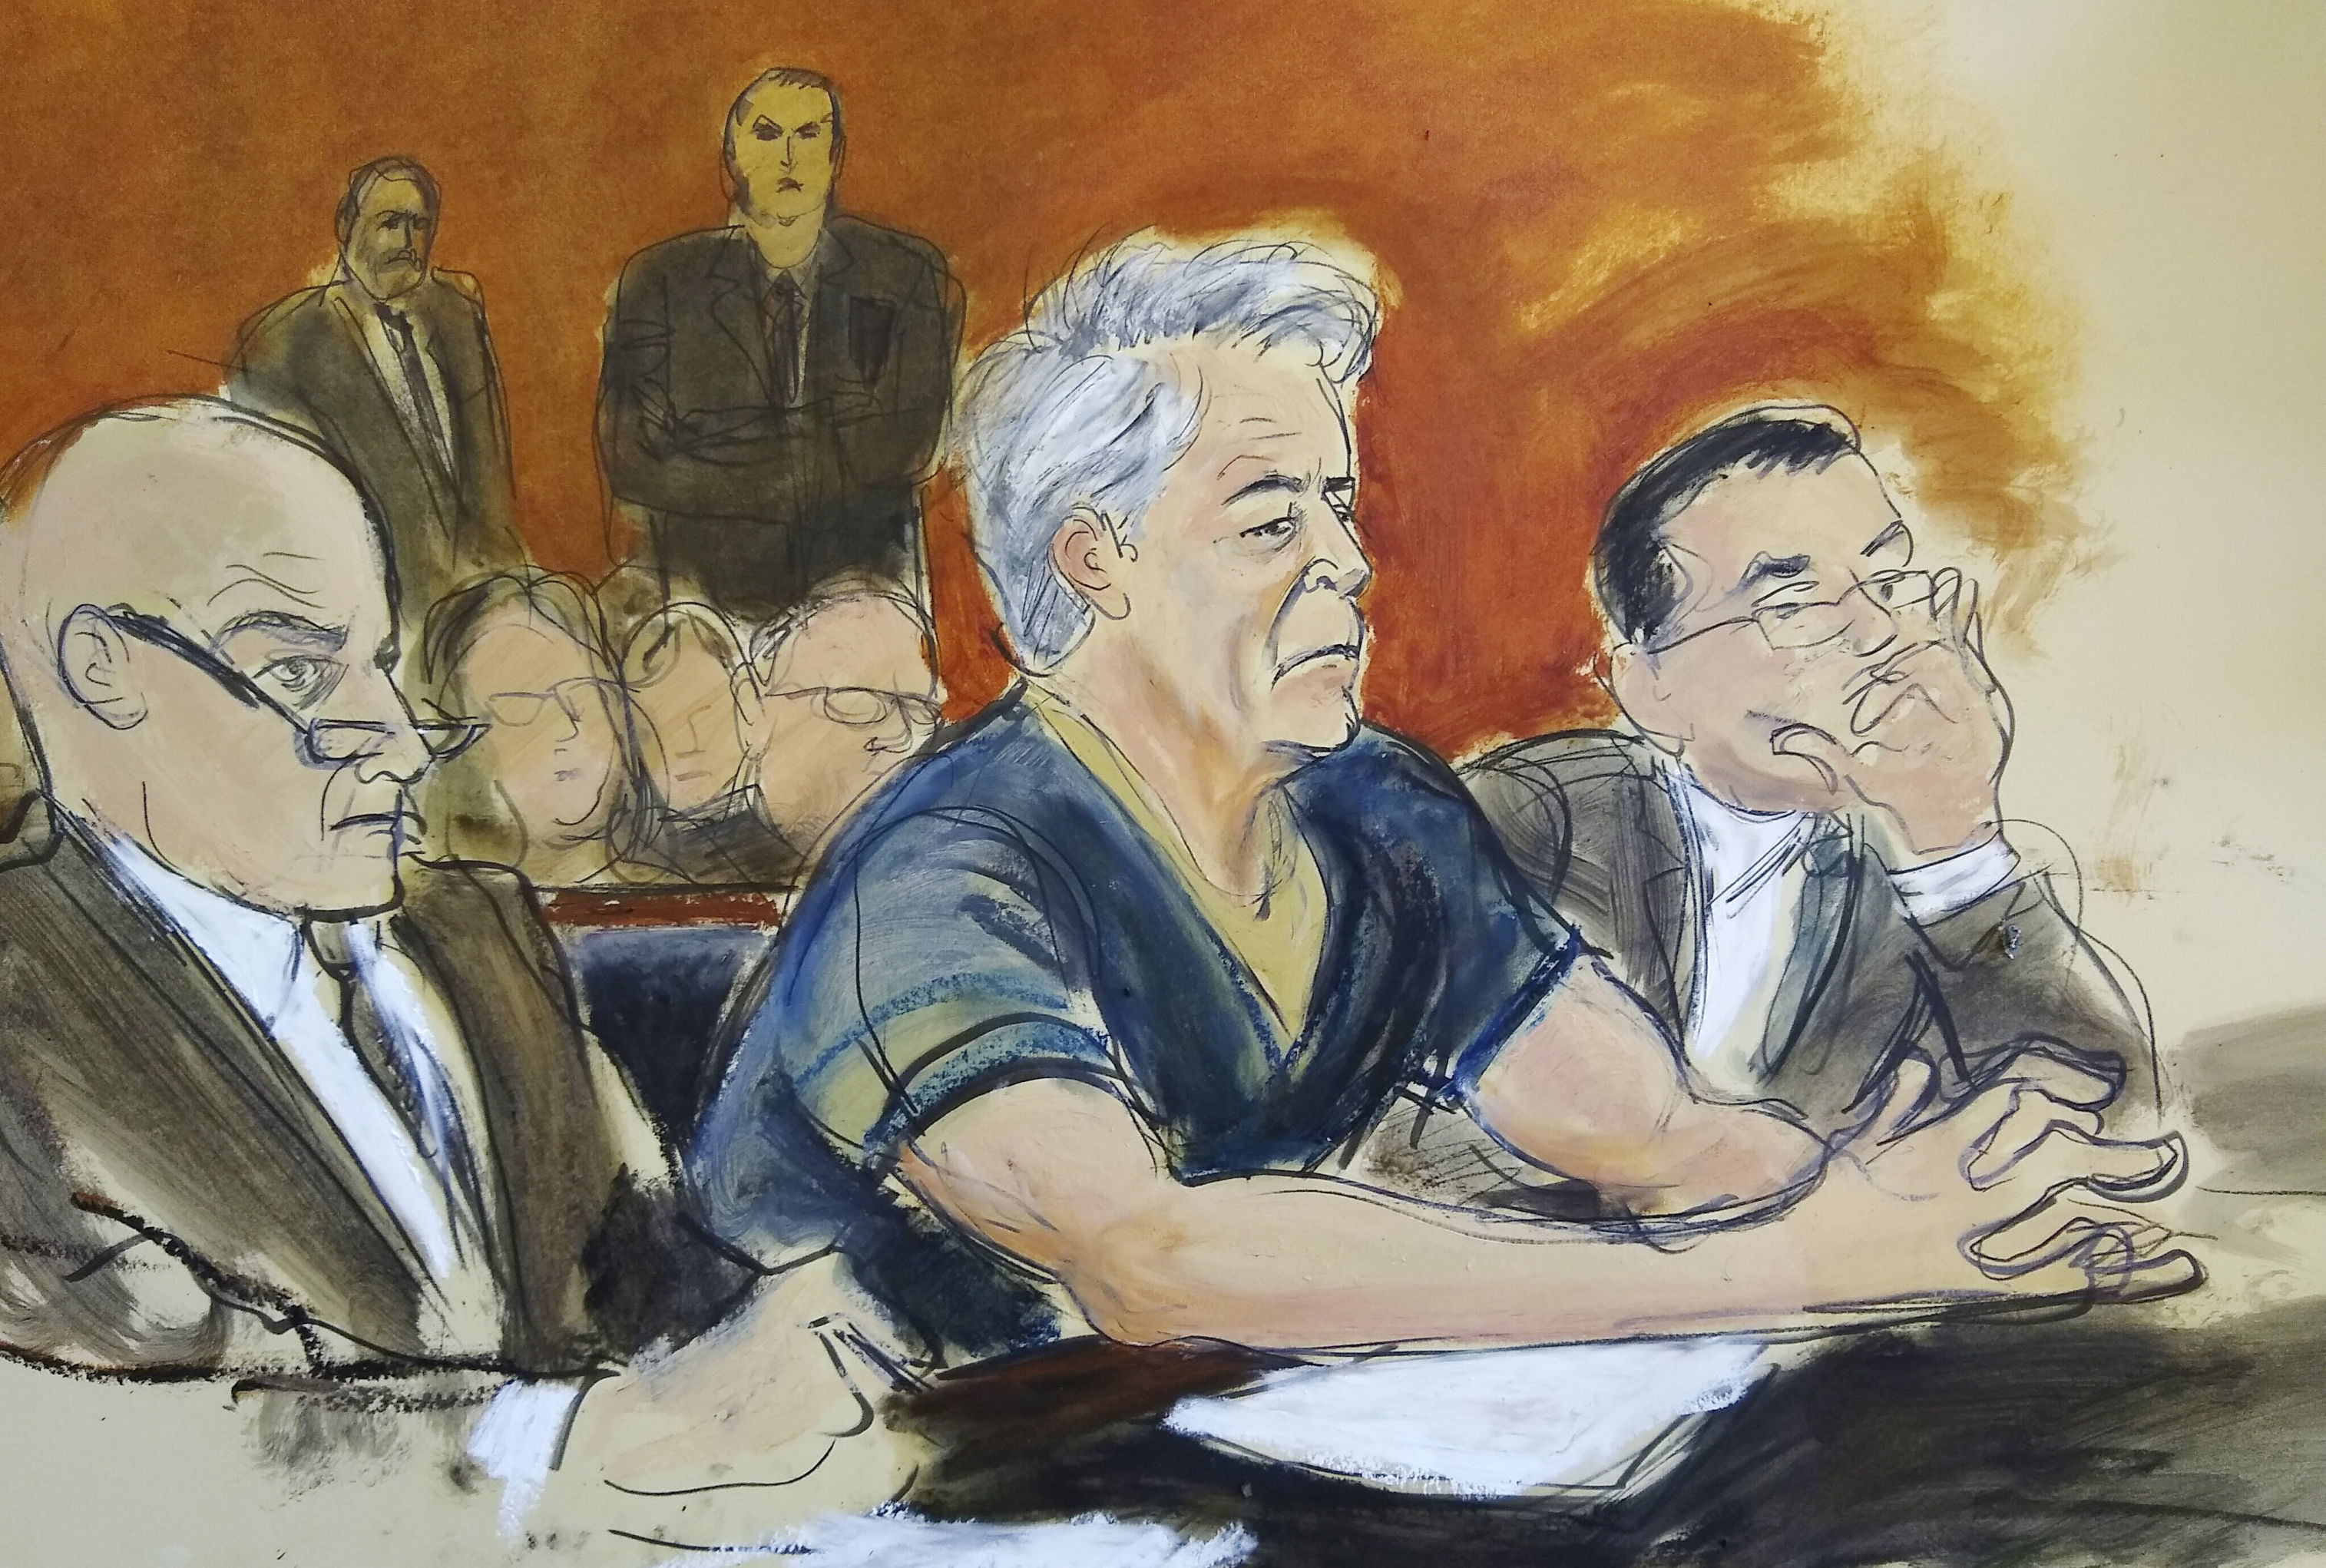 In this courtroom artist's sketch, defendant Jeffrey Epstein, center, sits with attorneys Martin Weinberg, left, and Marc Fernich during his arraignment in New York federal court, Monday, July 8, 2019. Epstein pleaded not guilty to federal sex trafficking charges. The 66-year-old is accused of creating and maintaining a network that allowed him to sexually exploit and abuse dozens of underage girls from 2002 to 2005.